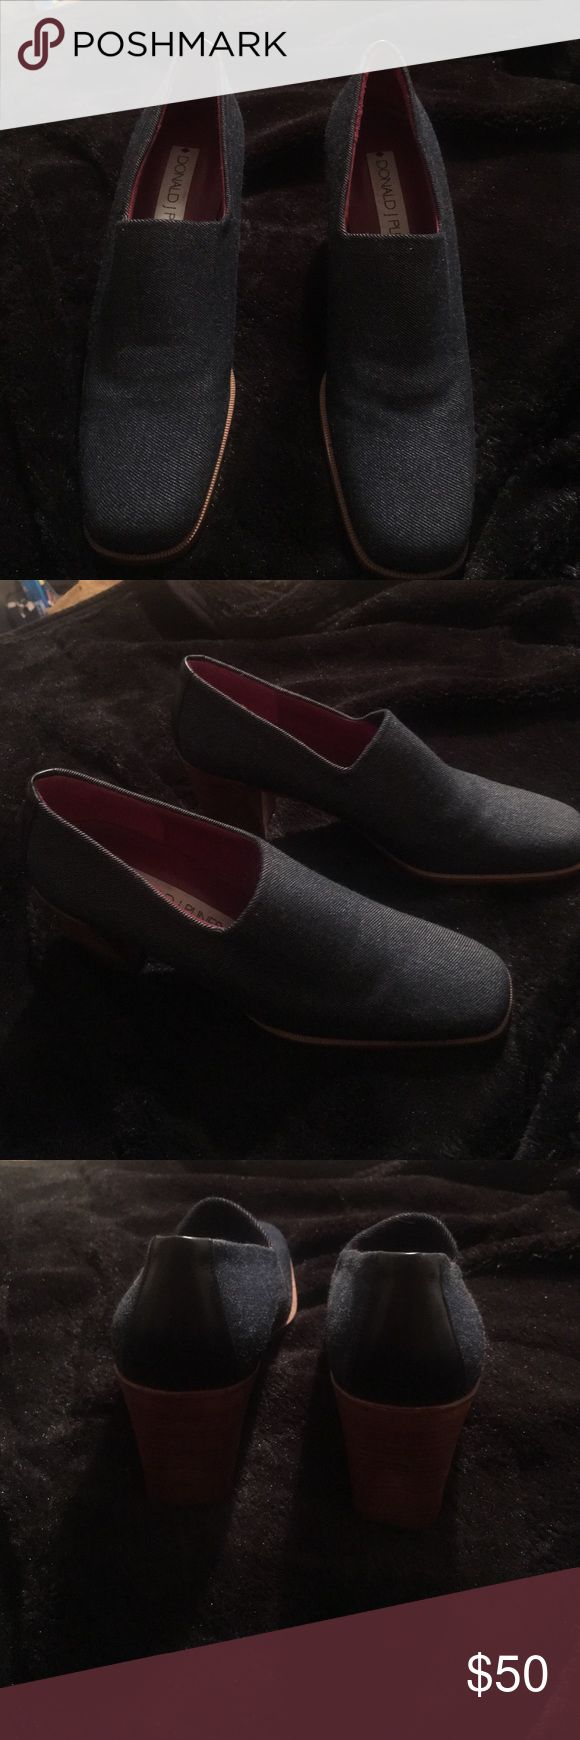 """🎉🎉🎉 Donald J. Pliner Denim shoes A beautiful pair of Donald J. Pliner made in Spain denim heels in excellent used condition. Sz 8N 3"""" H please ask all questions before buying no refunds Donald J. Pliner Shoes Heels"""